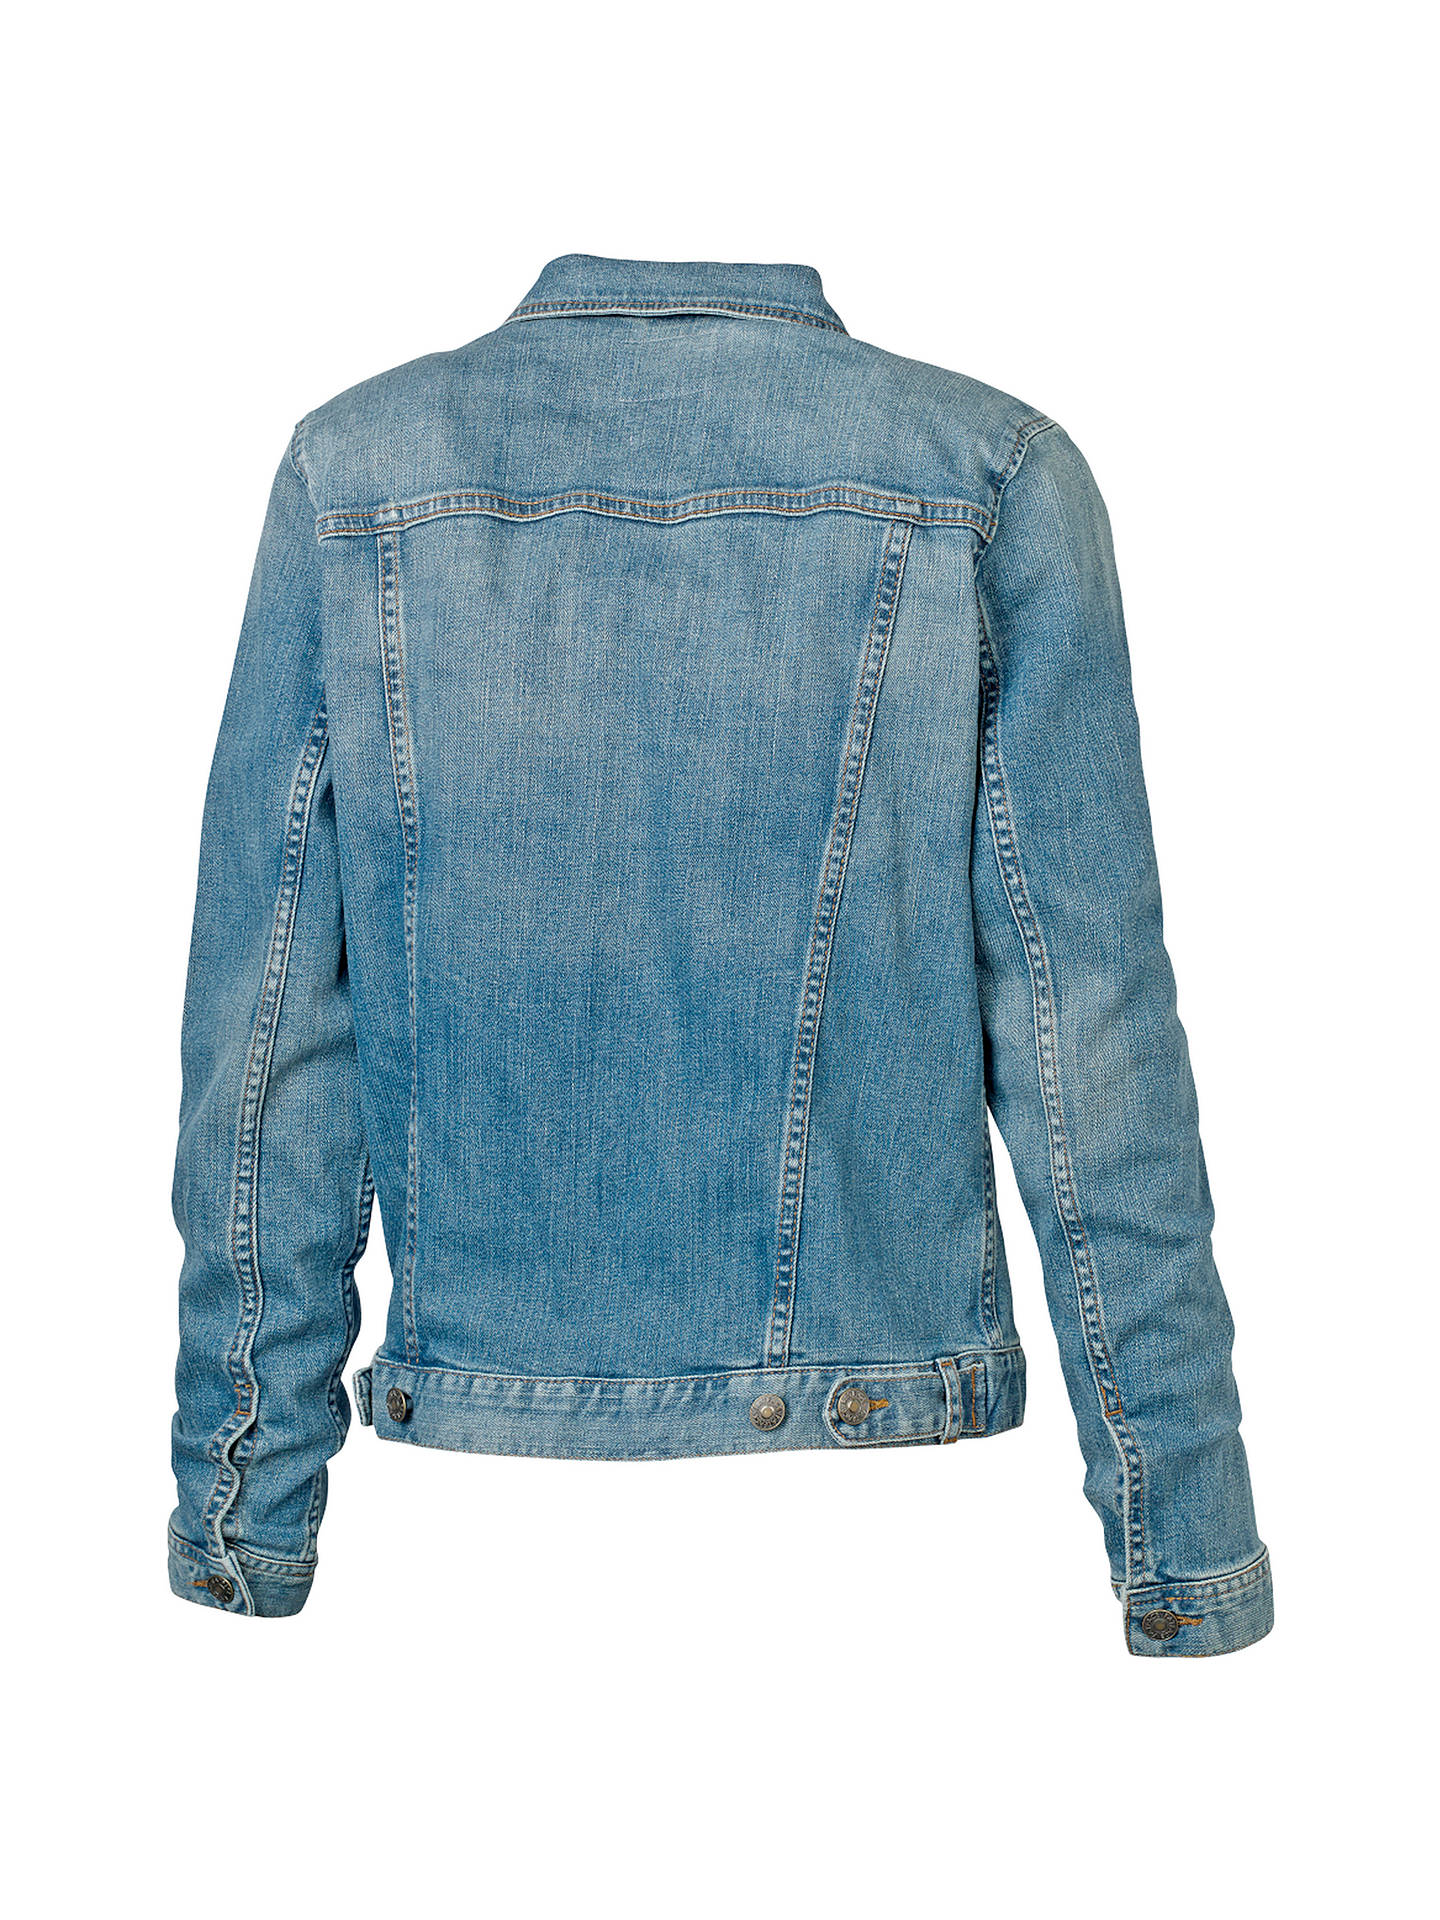 BuyFat Face Pennymoor Jacket, Light Blue/ Denim, 6 Online at johnlewis.com